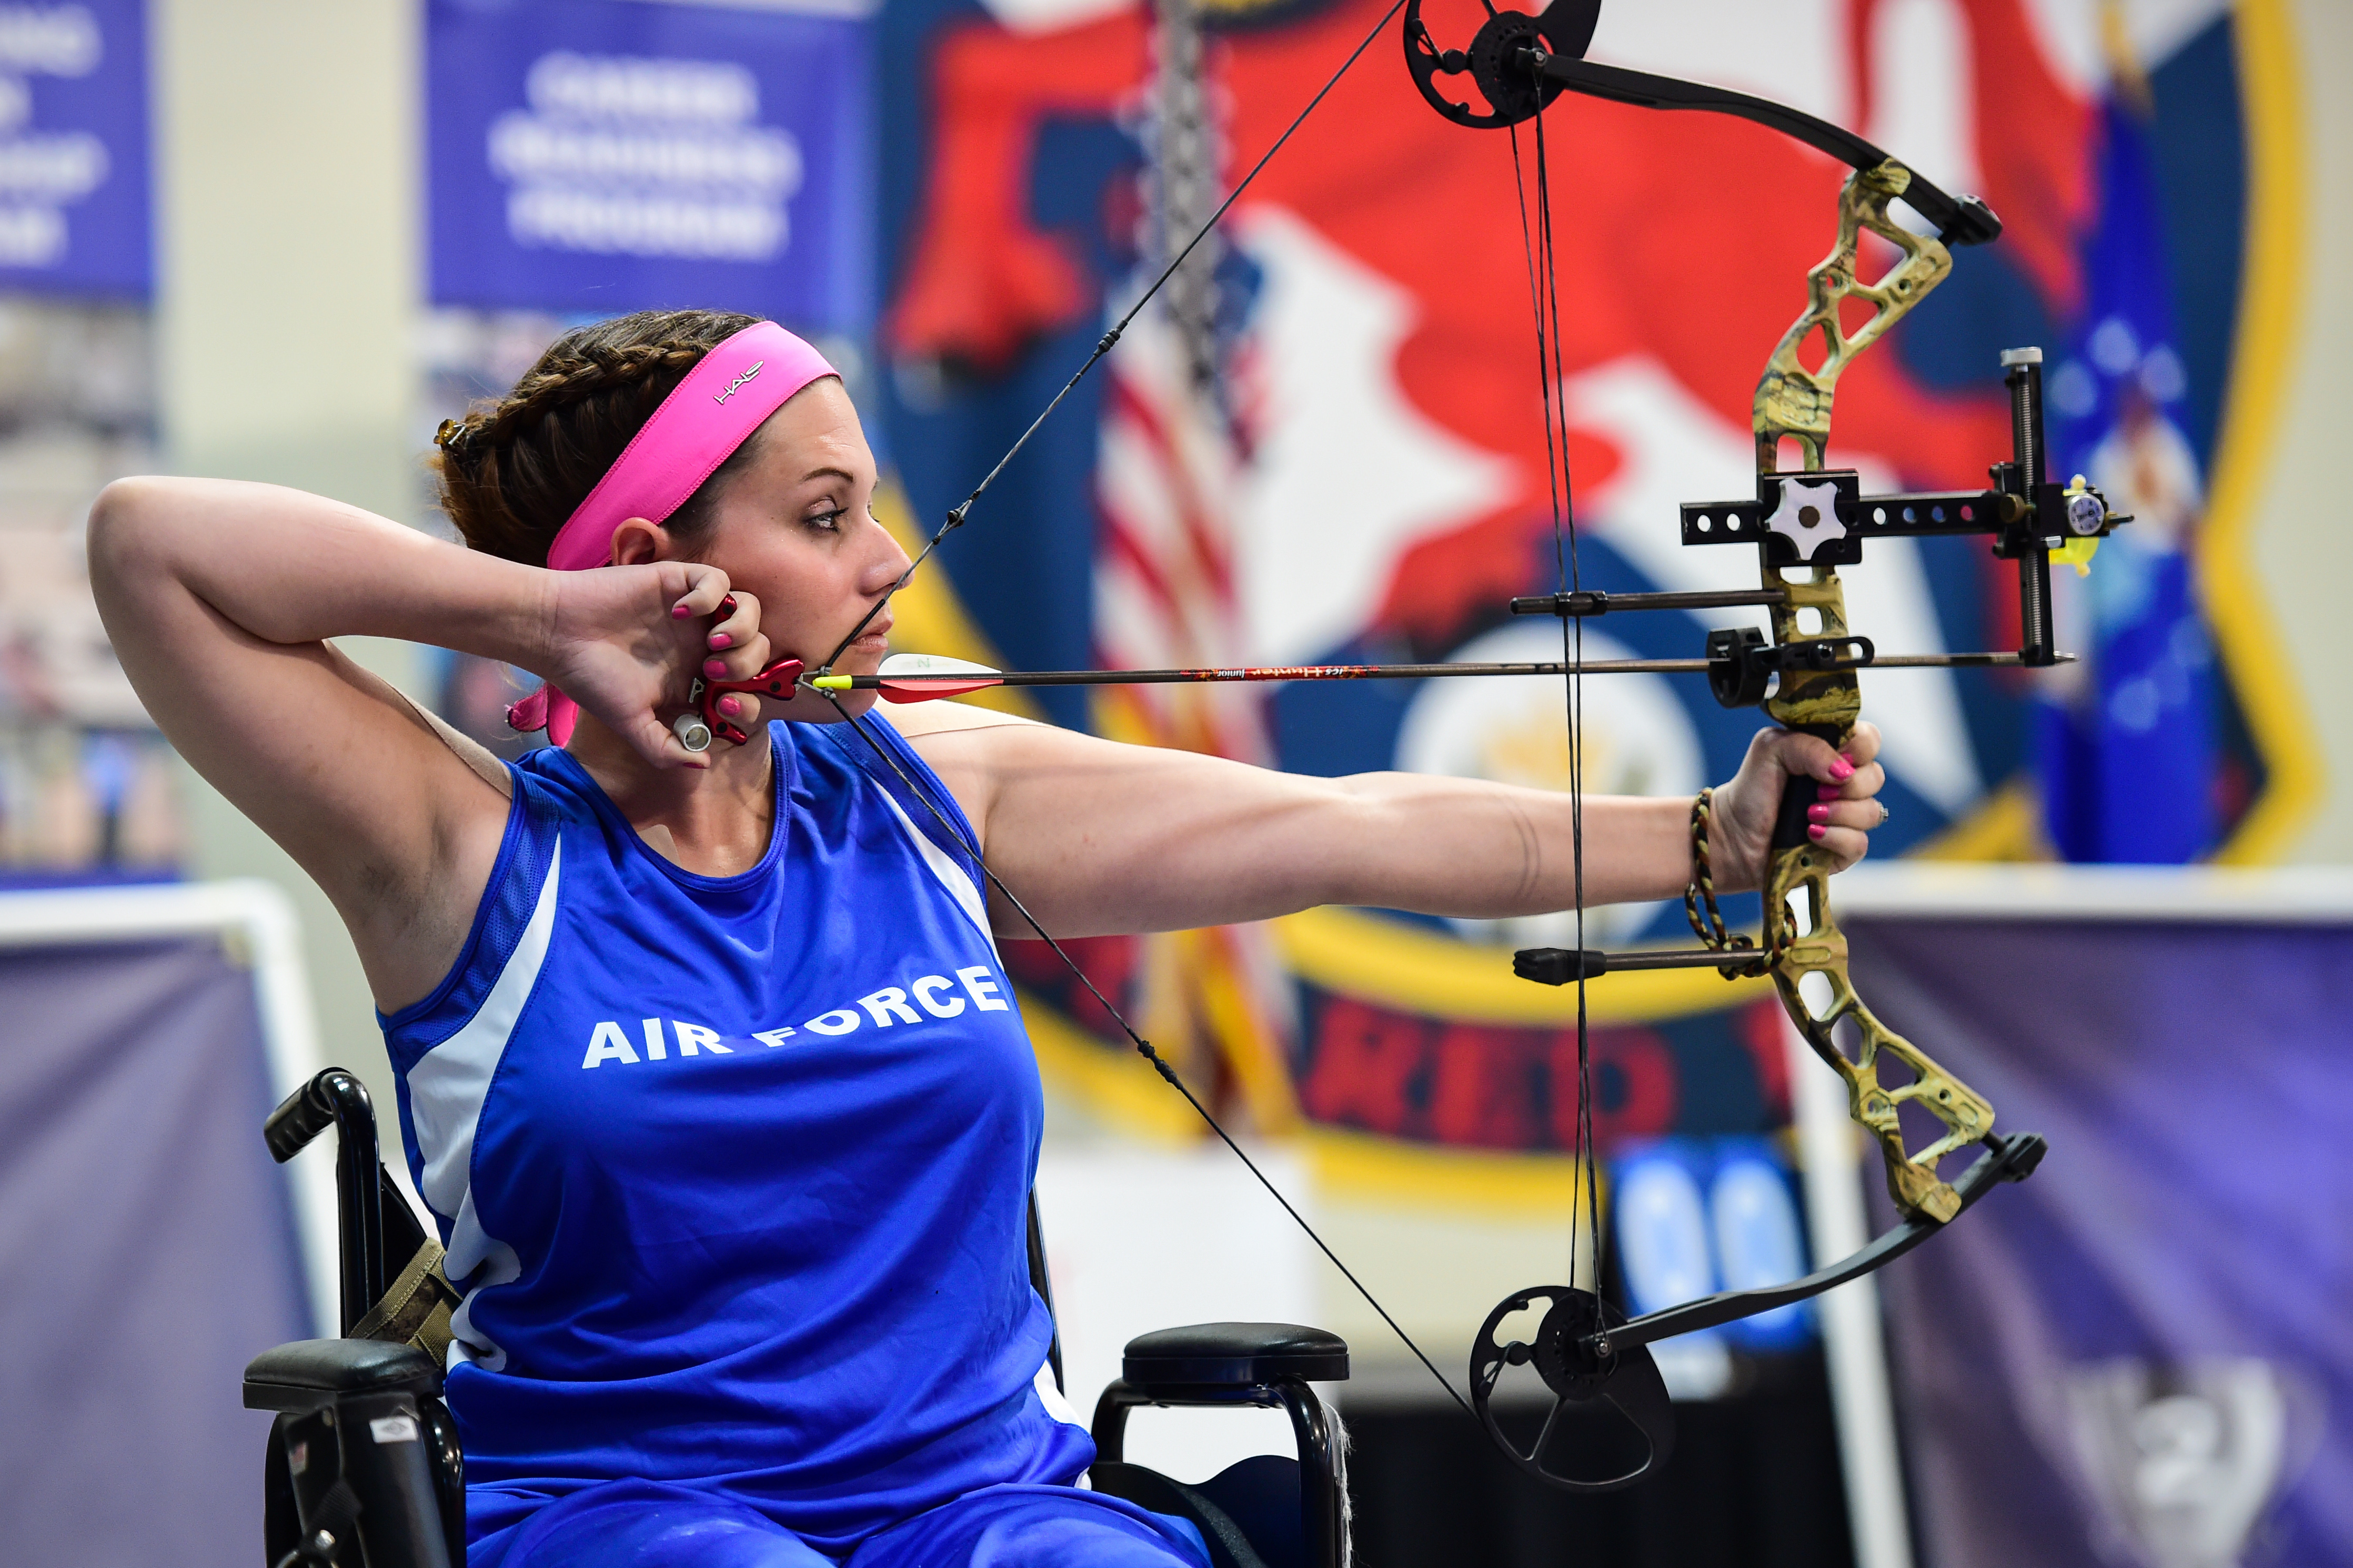 Ashley Crites, Air Force Trials participant, prepares to fire an arrow during the 2016 Air Force Trials at Nellis Air Force Base, Nev., Feb. 29. The Air Force Trials are an adaptive sports event designed to promote the mental and physical well-being of seriously wounded, ill and injured military members and veterans. More than 100 wounded, ill or injured service men and women from around the country will compete for a spot on the 2016 Warrior Games Team which will represent the Air Force at the US Military Academy at West Point in June. (U.S. Air Force photo by Senior Airman Taylor Curry/Released)